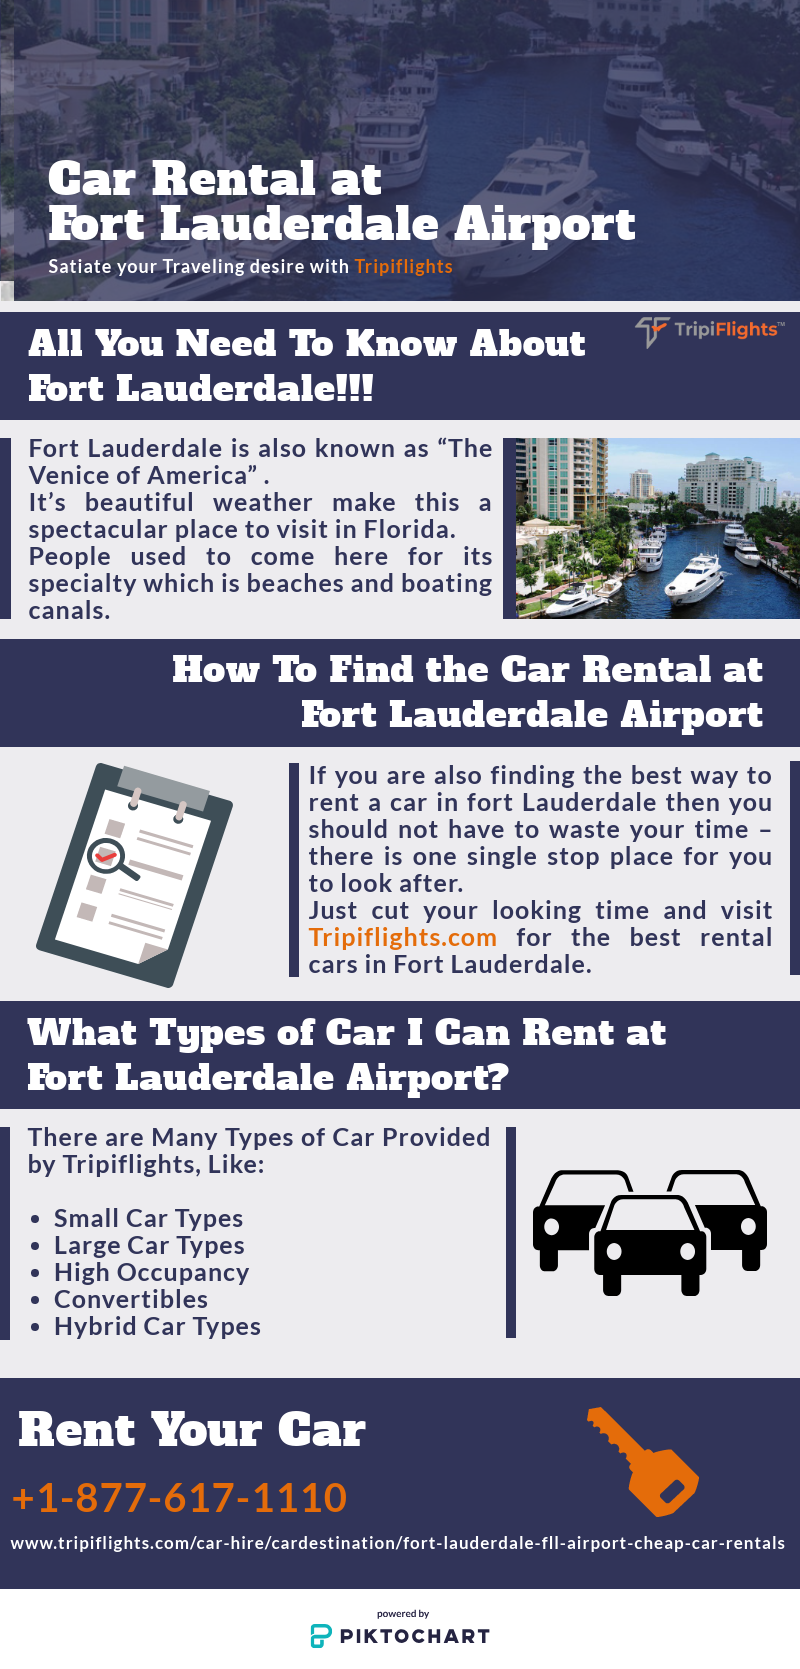 Car Rental At Fort Lauderdale Airport With Tripiflights Must See Fort Lauderdale Airport Car Rental Airport Car Rental